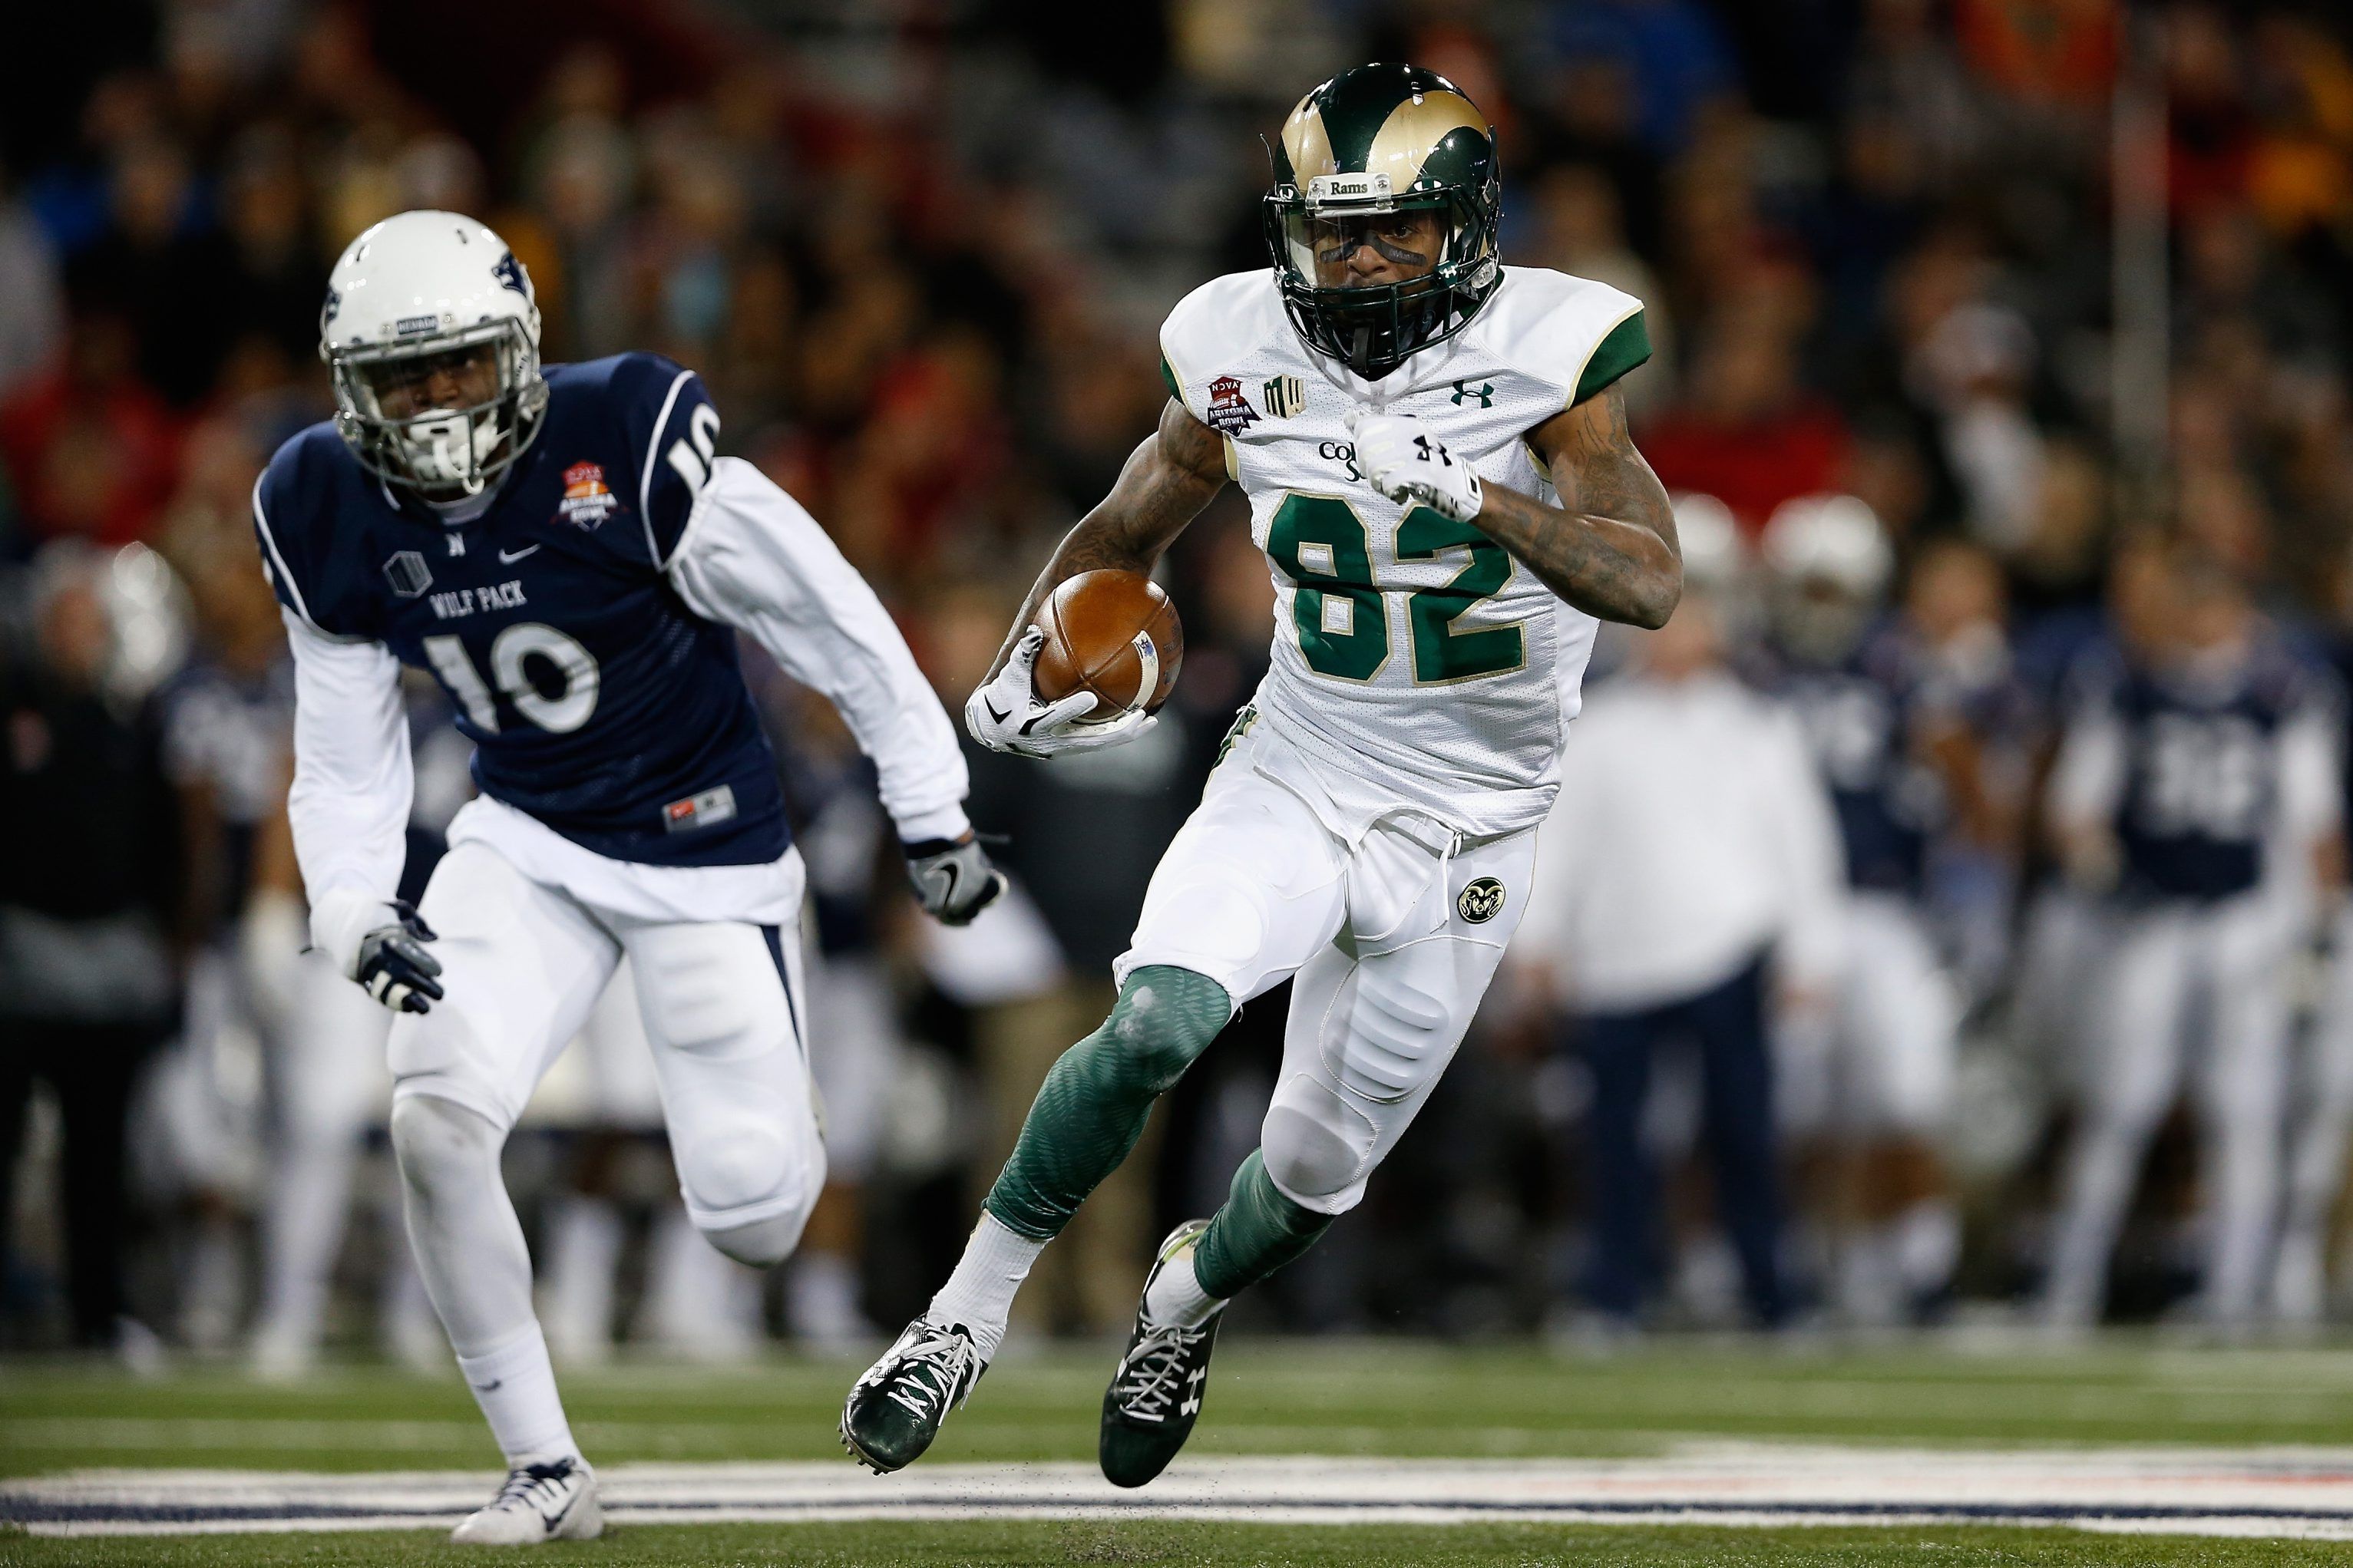 Colorado State Rams wide receiver Rashard Higgins runs with the football after a reception past Nevada Wolf Pack linebacker L.J. Jackson.